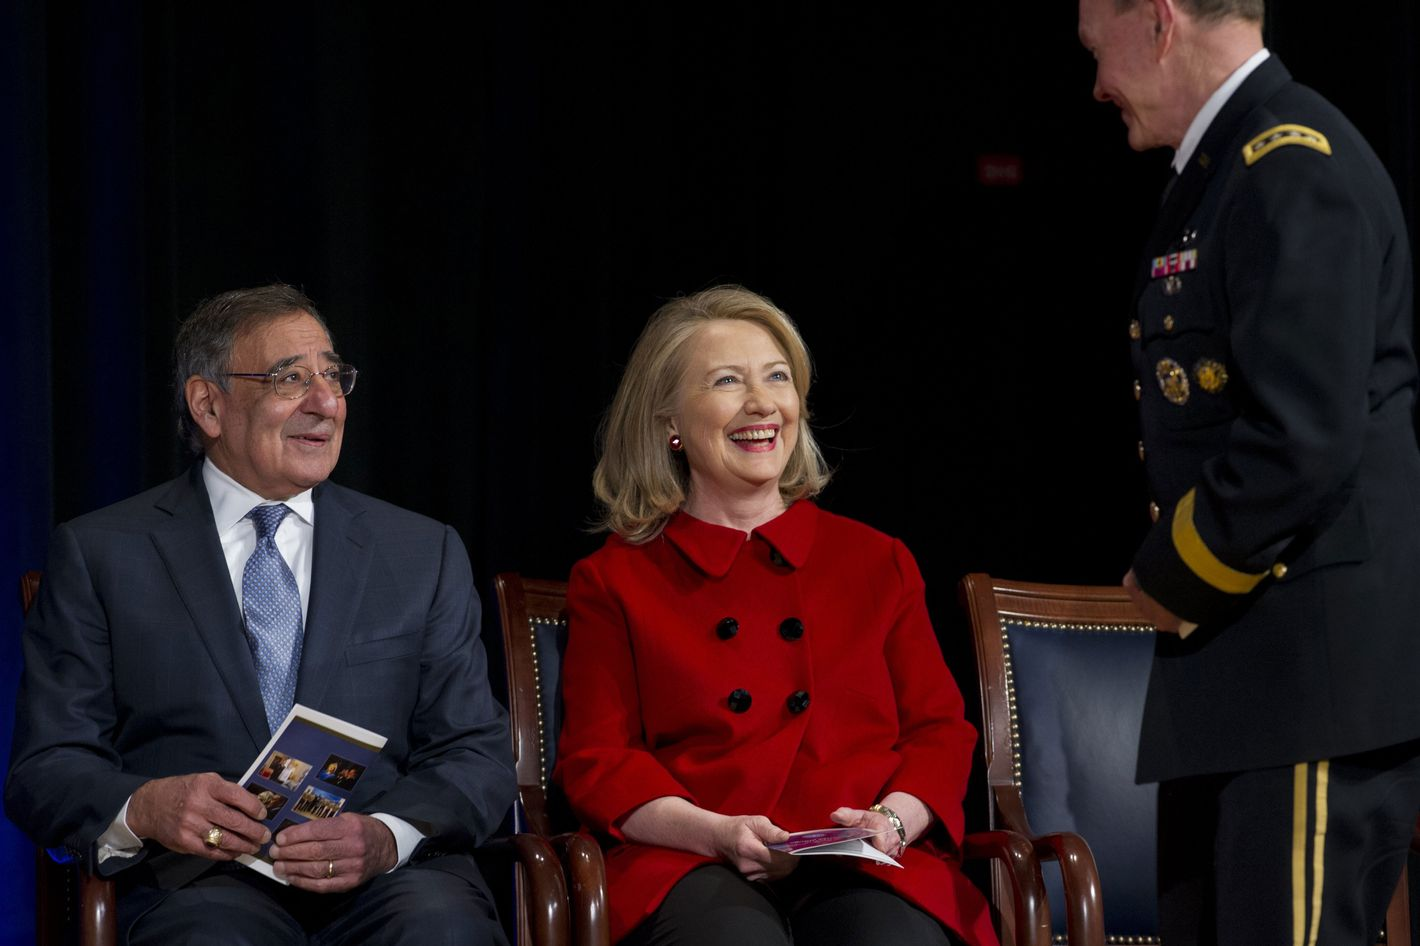 US Secretary of Defense Leon Panetta and former Secretary of State Hillary Clinton speak with Chairman of the Joint Chiefs Martin Dempsey (R) prior to Clinton receiving awards from Panetta and Dempsey during a ceremony at the Pentagon in Washington, DC, February 14, 2013.